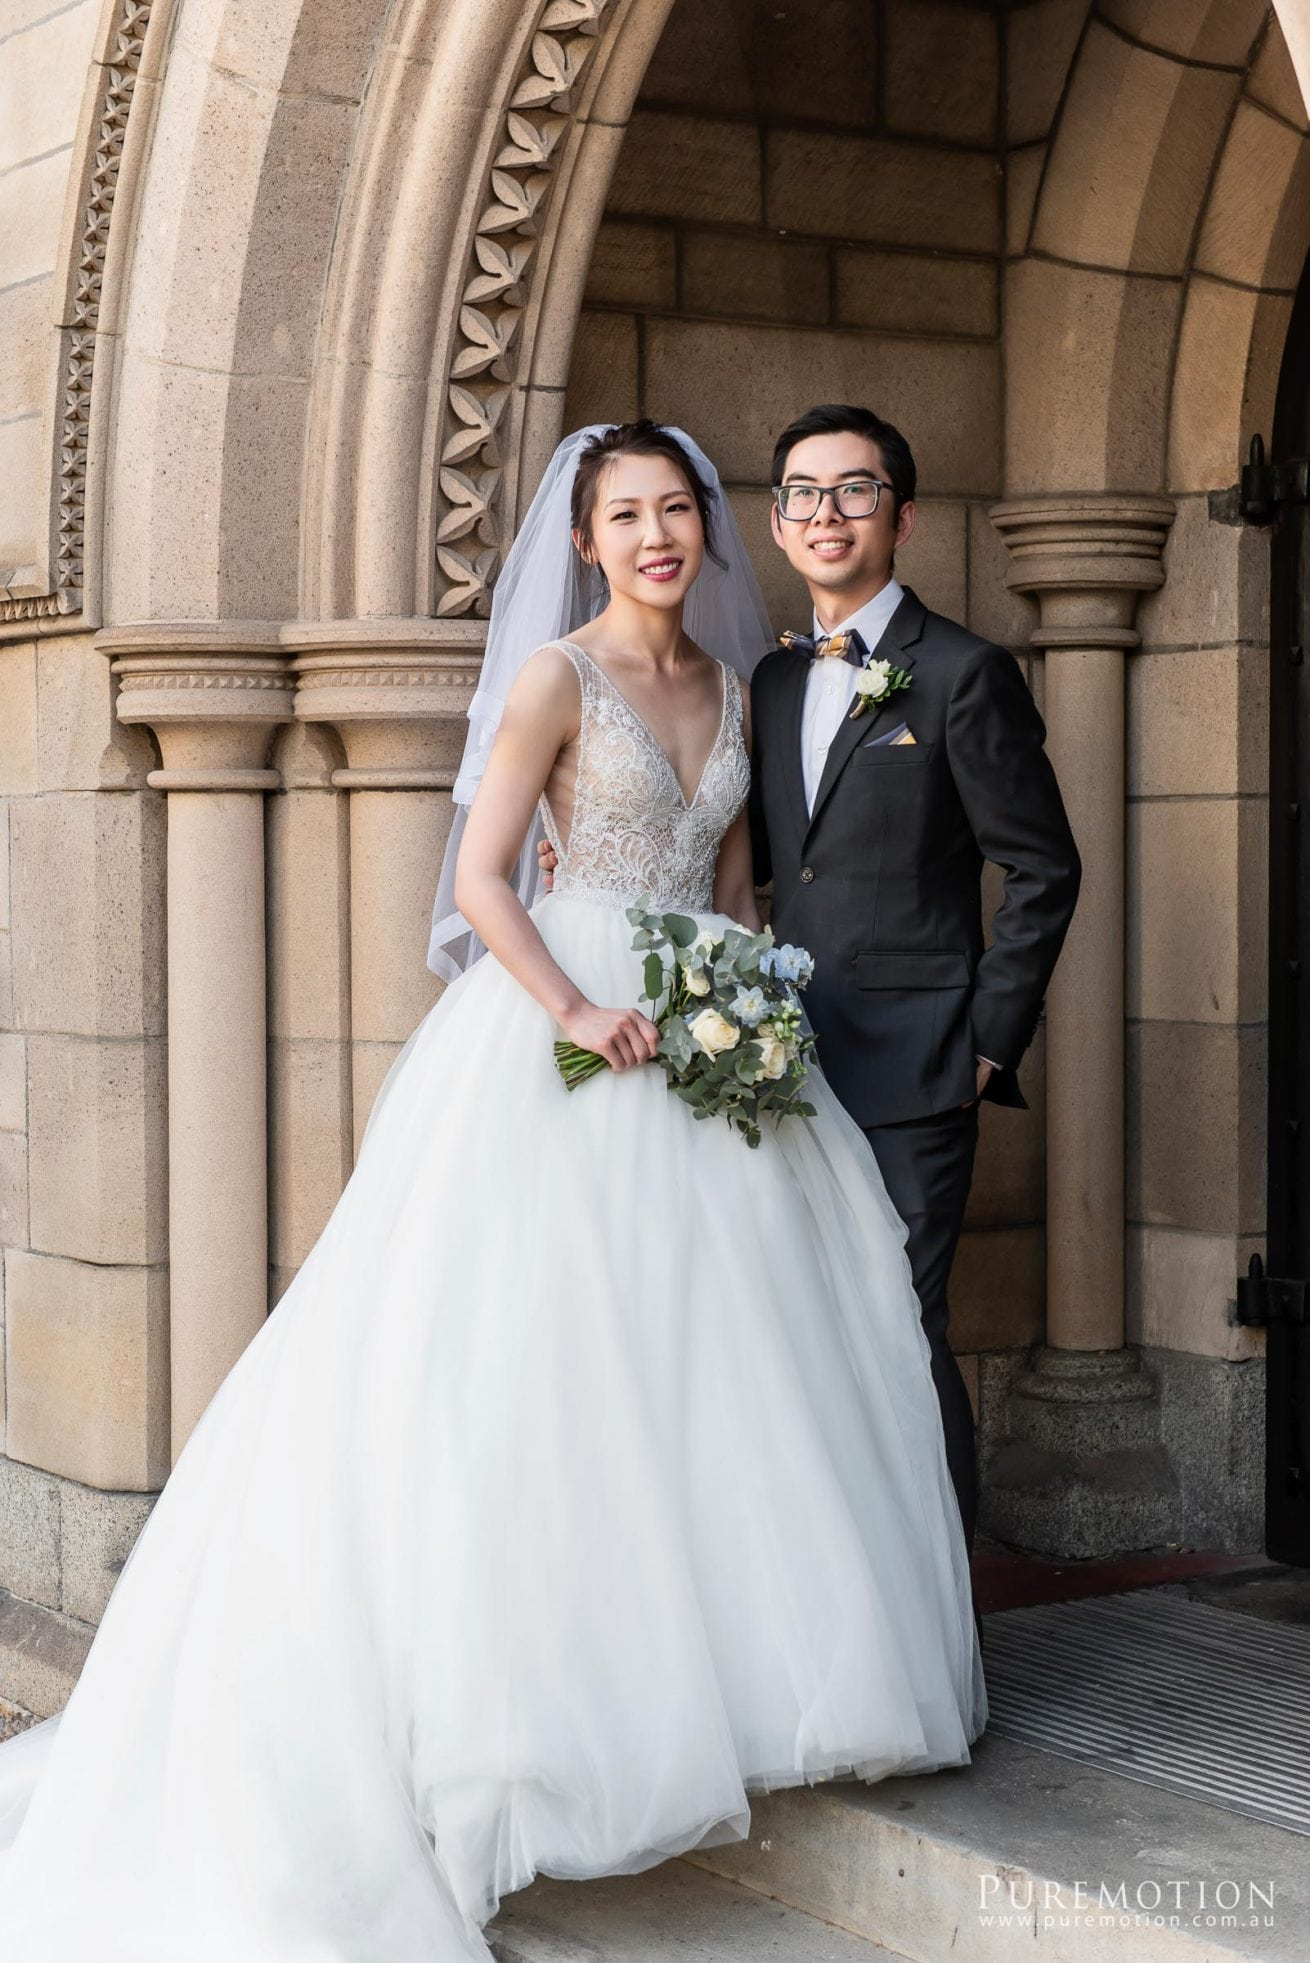 180818 Puremotion Wedding Photography Brisbane Alex Huang MichelleConan Room 360_Site-0078